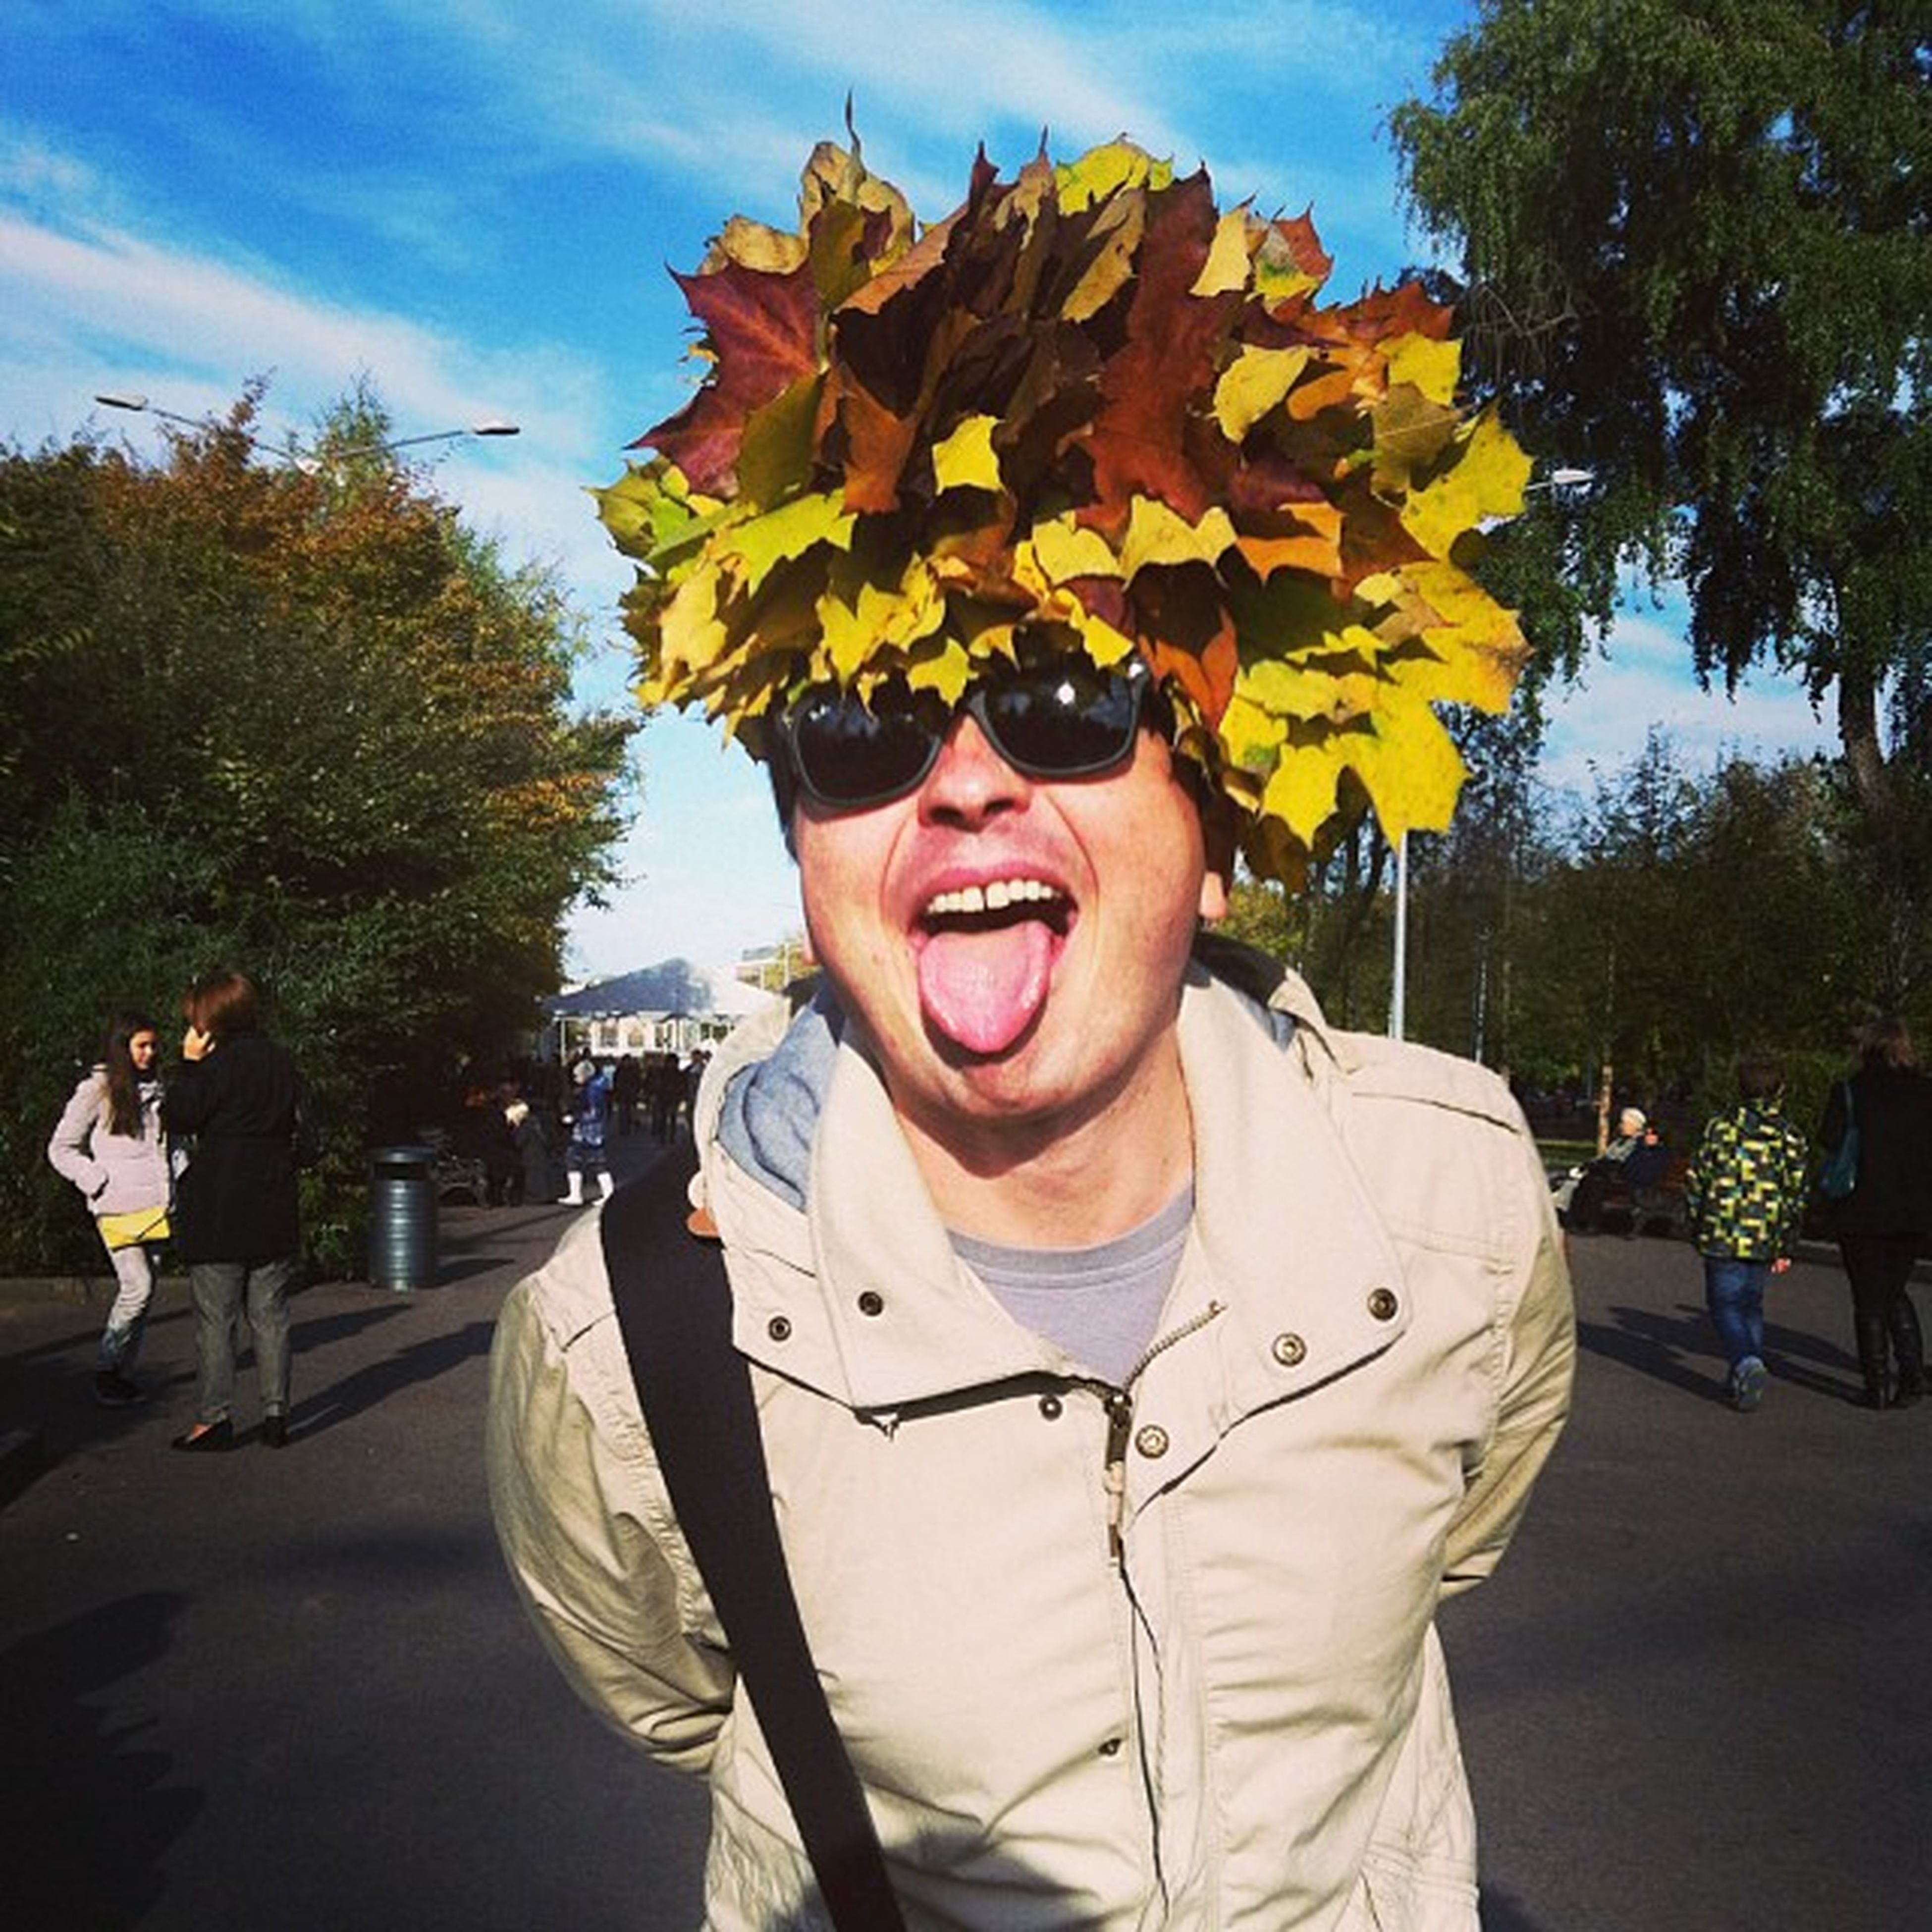 lifestyles, person, leisure activity, casual clothing, tree, front view, looking at camera, portrait, young adult, standing, smiling, holding, sunglasses, happiness, park - man made space, yellow, waist up, flower